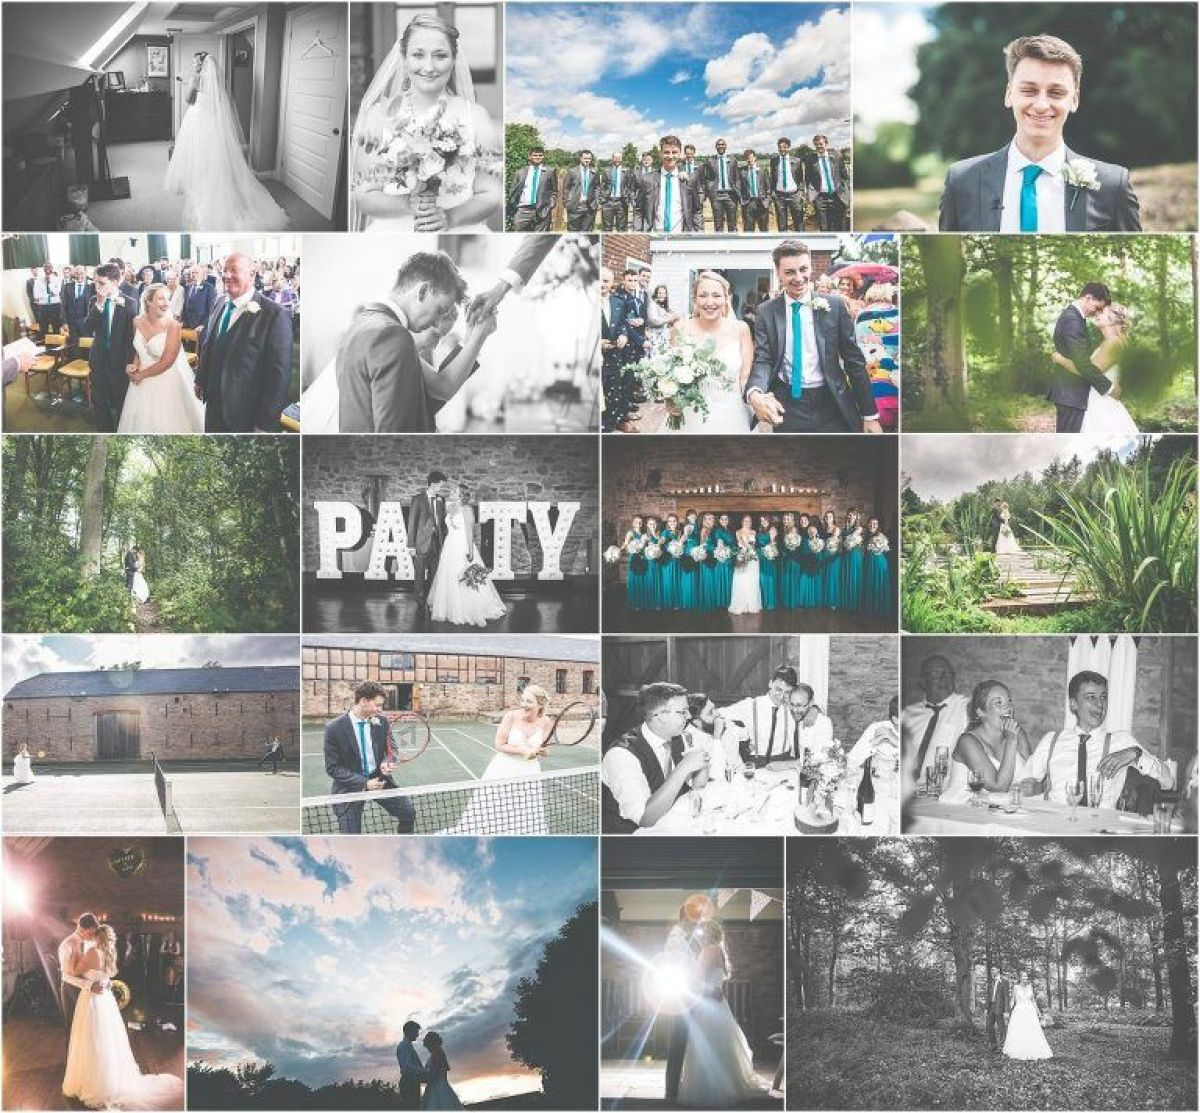 Hereford wedding photographer